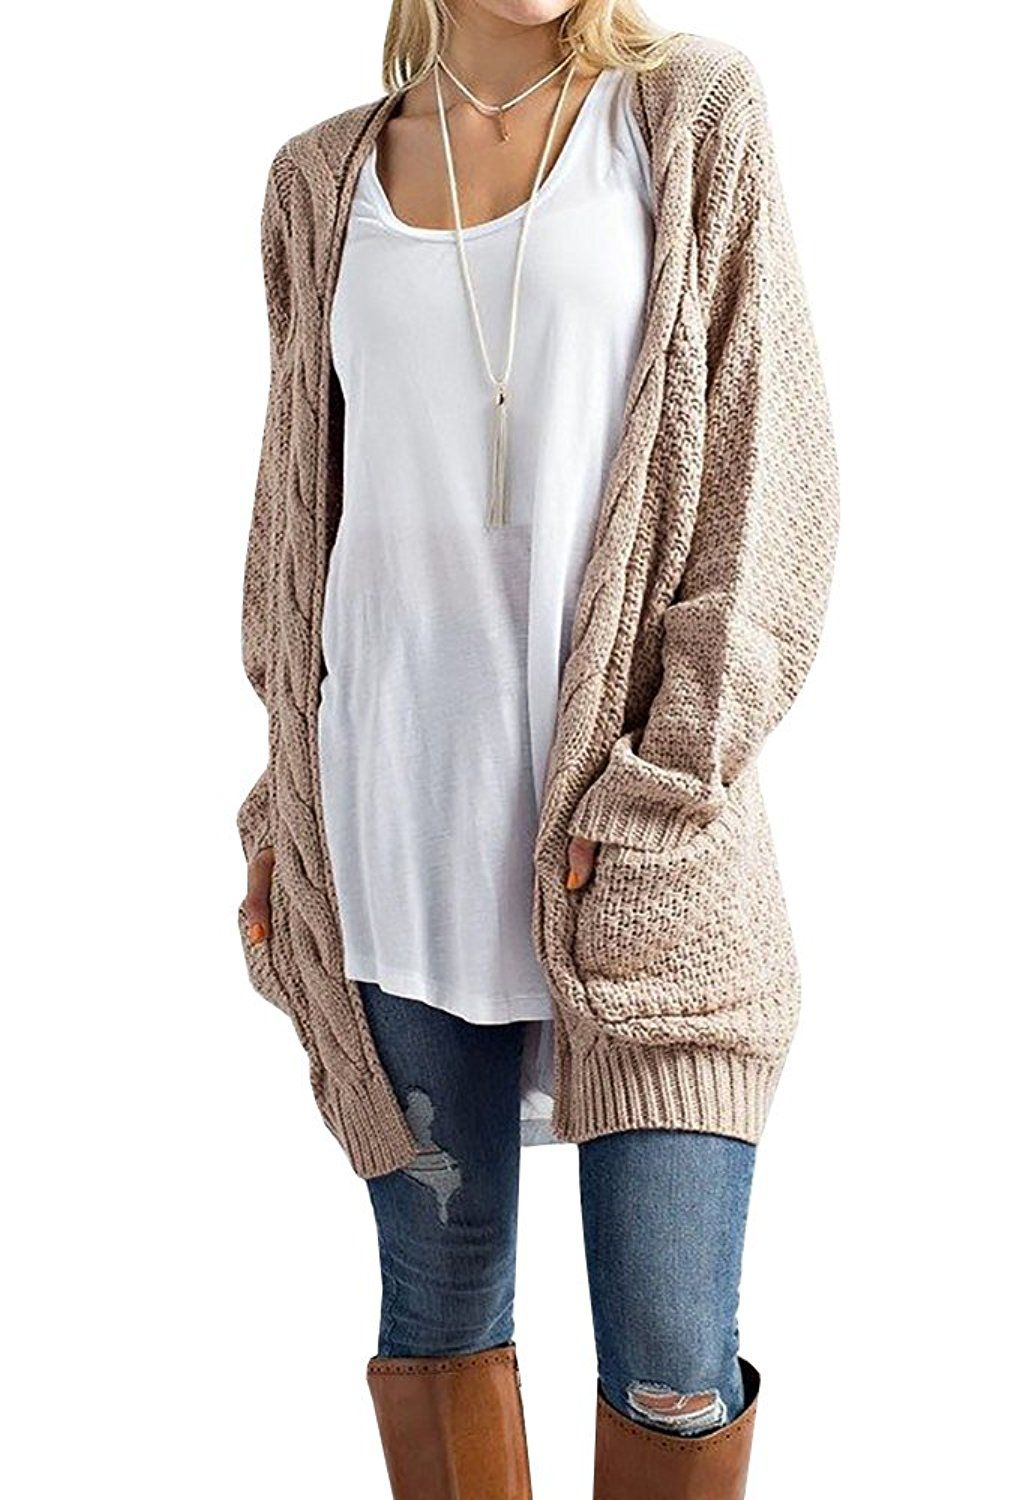 FISACE Women's Long Sleeve Knitwear Open Front Cardigan Sweaters ...